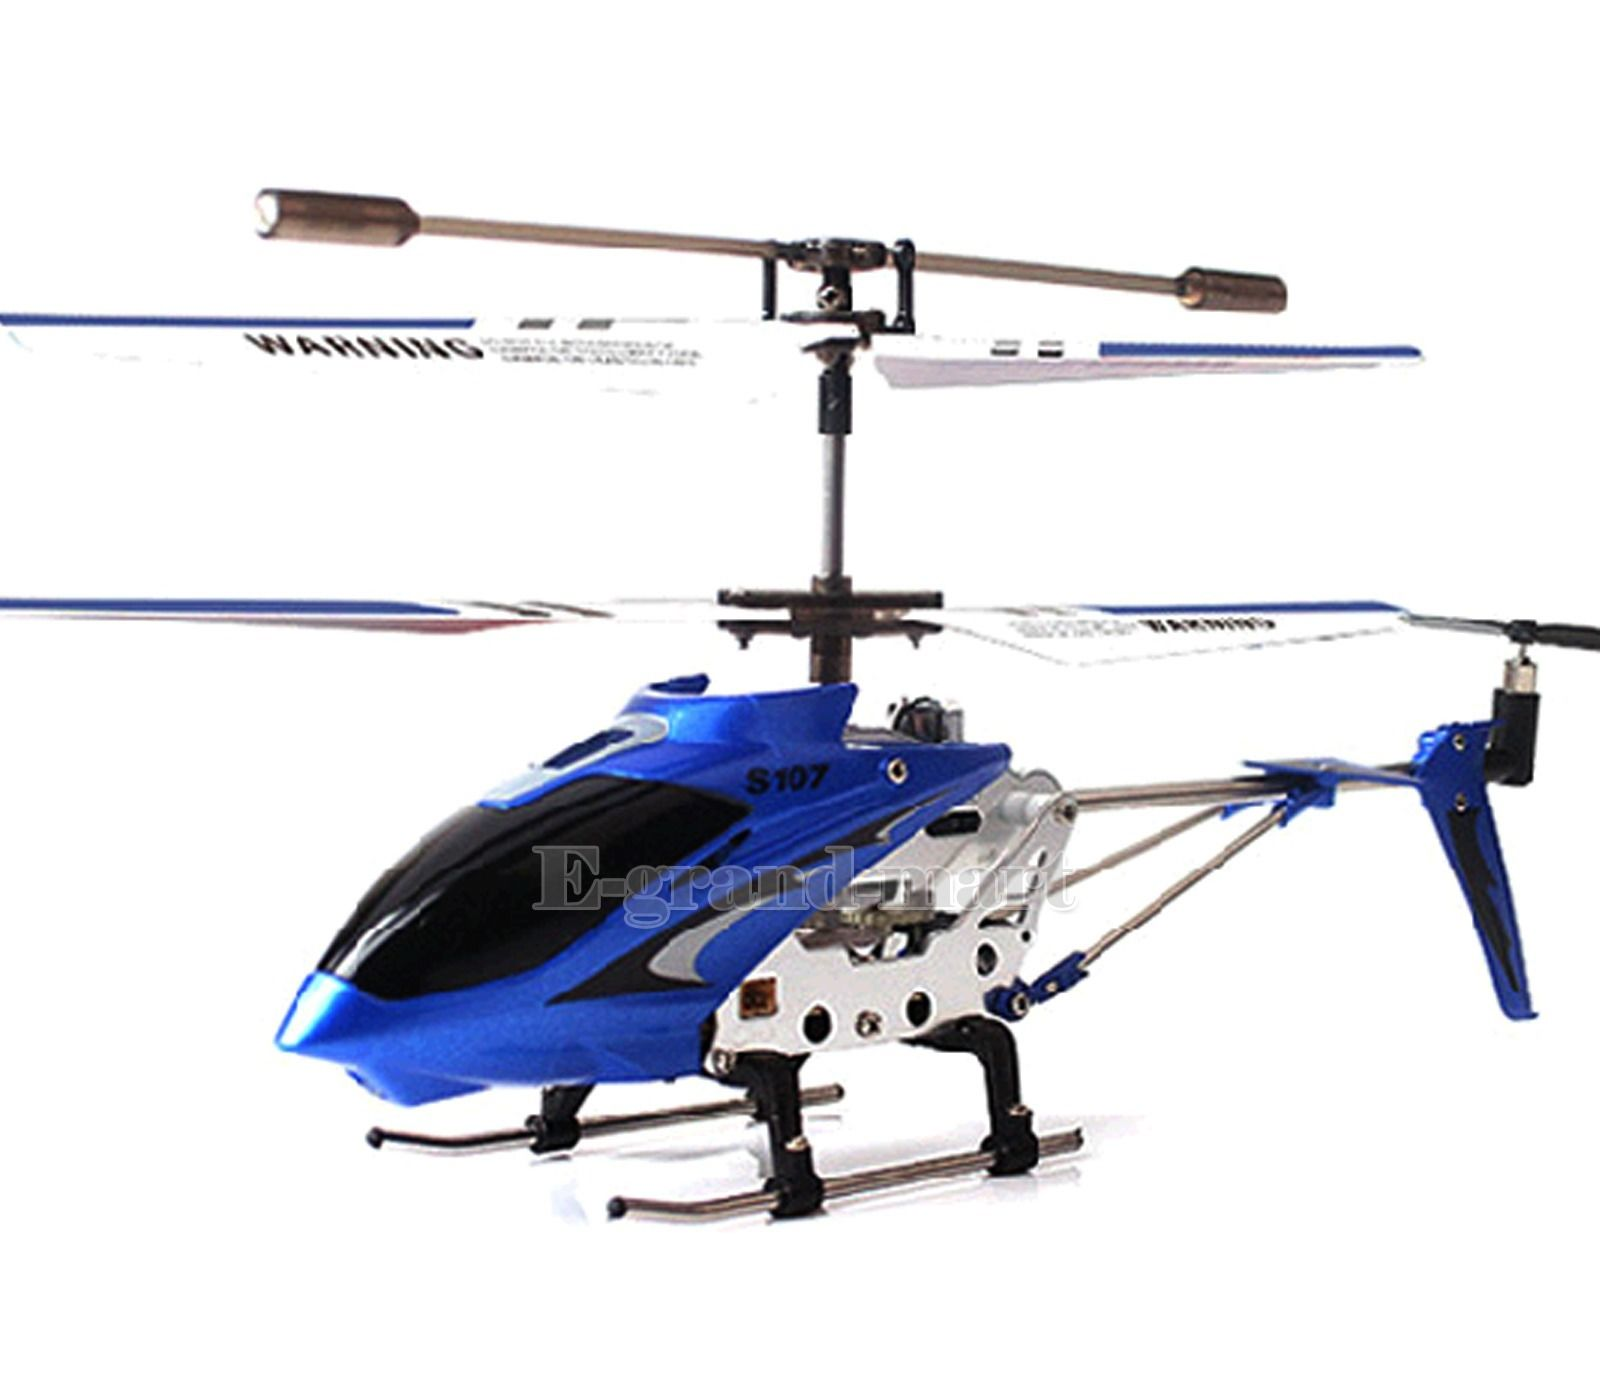 gyro 3 5 channel rc helicopter with 271400775028 on Rc Helicopter Camera further 28h Wlv398 Missile Yellow likewise Syma Original X5sw Drones Quadcopter Hd Camera Wifi Rc Drone Fpv Helicopter 24g 6axis Real Time Rc Helicopter Toy also Vendetta Mask moreover Toy Remote Control Helicopters.